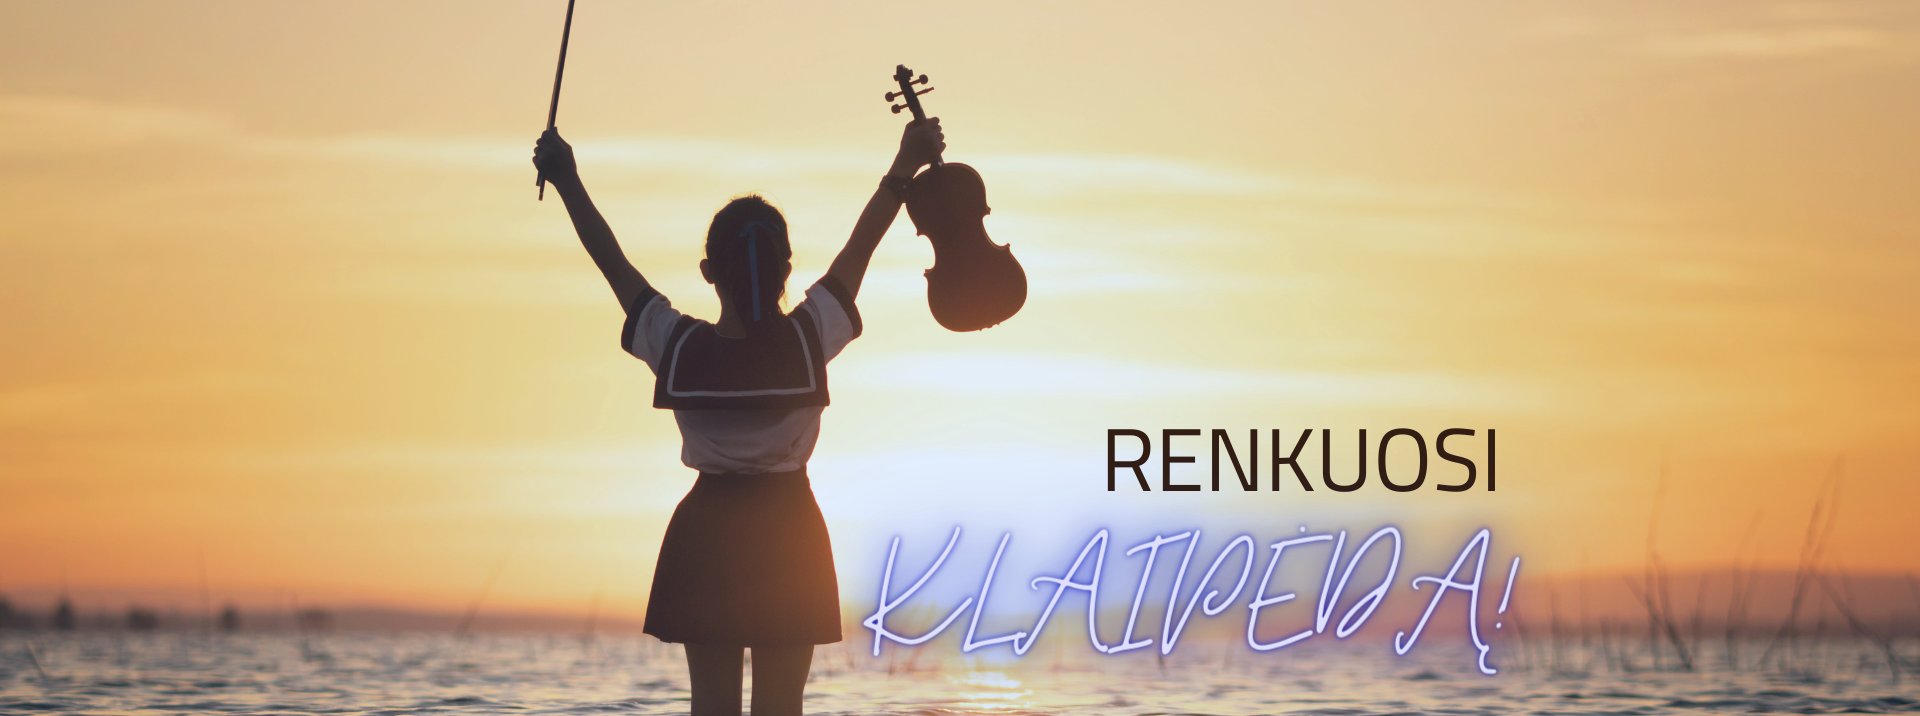 Repertoire page event cover image